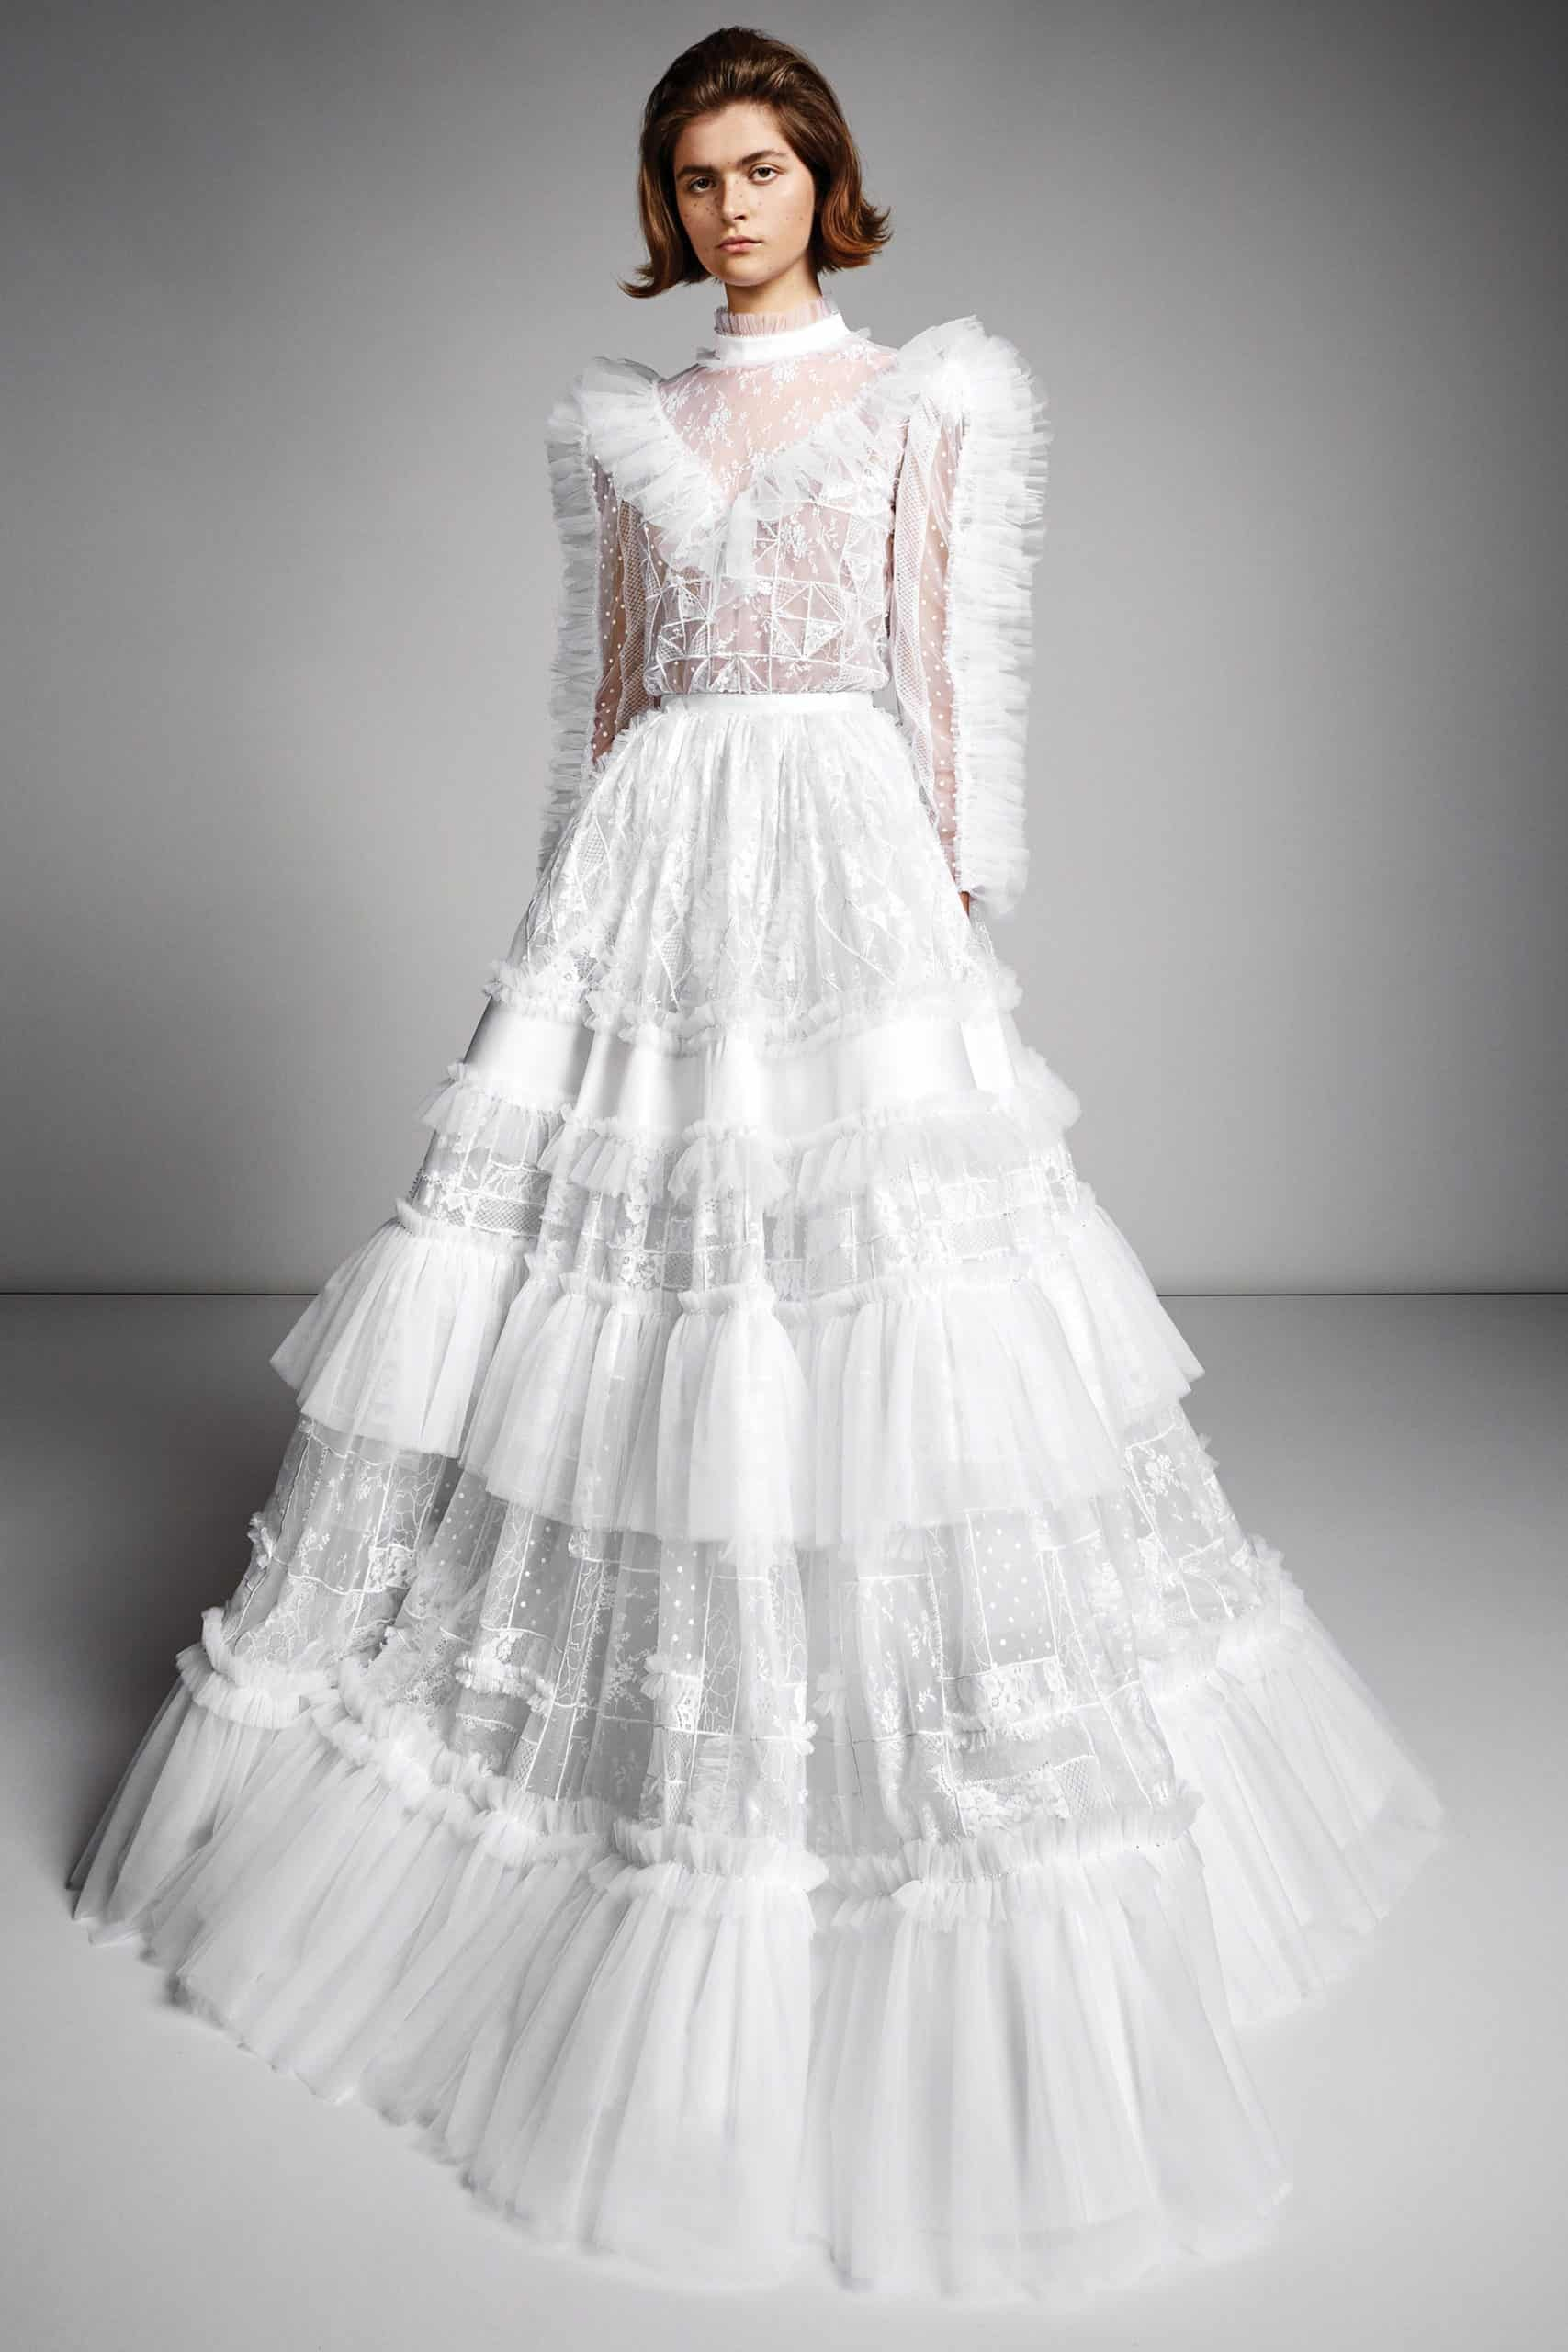 modern wedding dress a-lined with tulle and lace by Viktor and Rolf